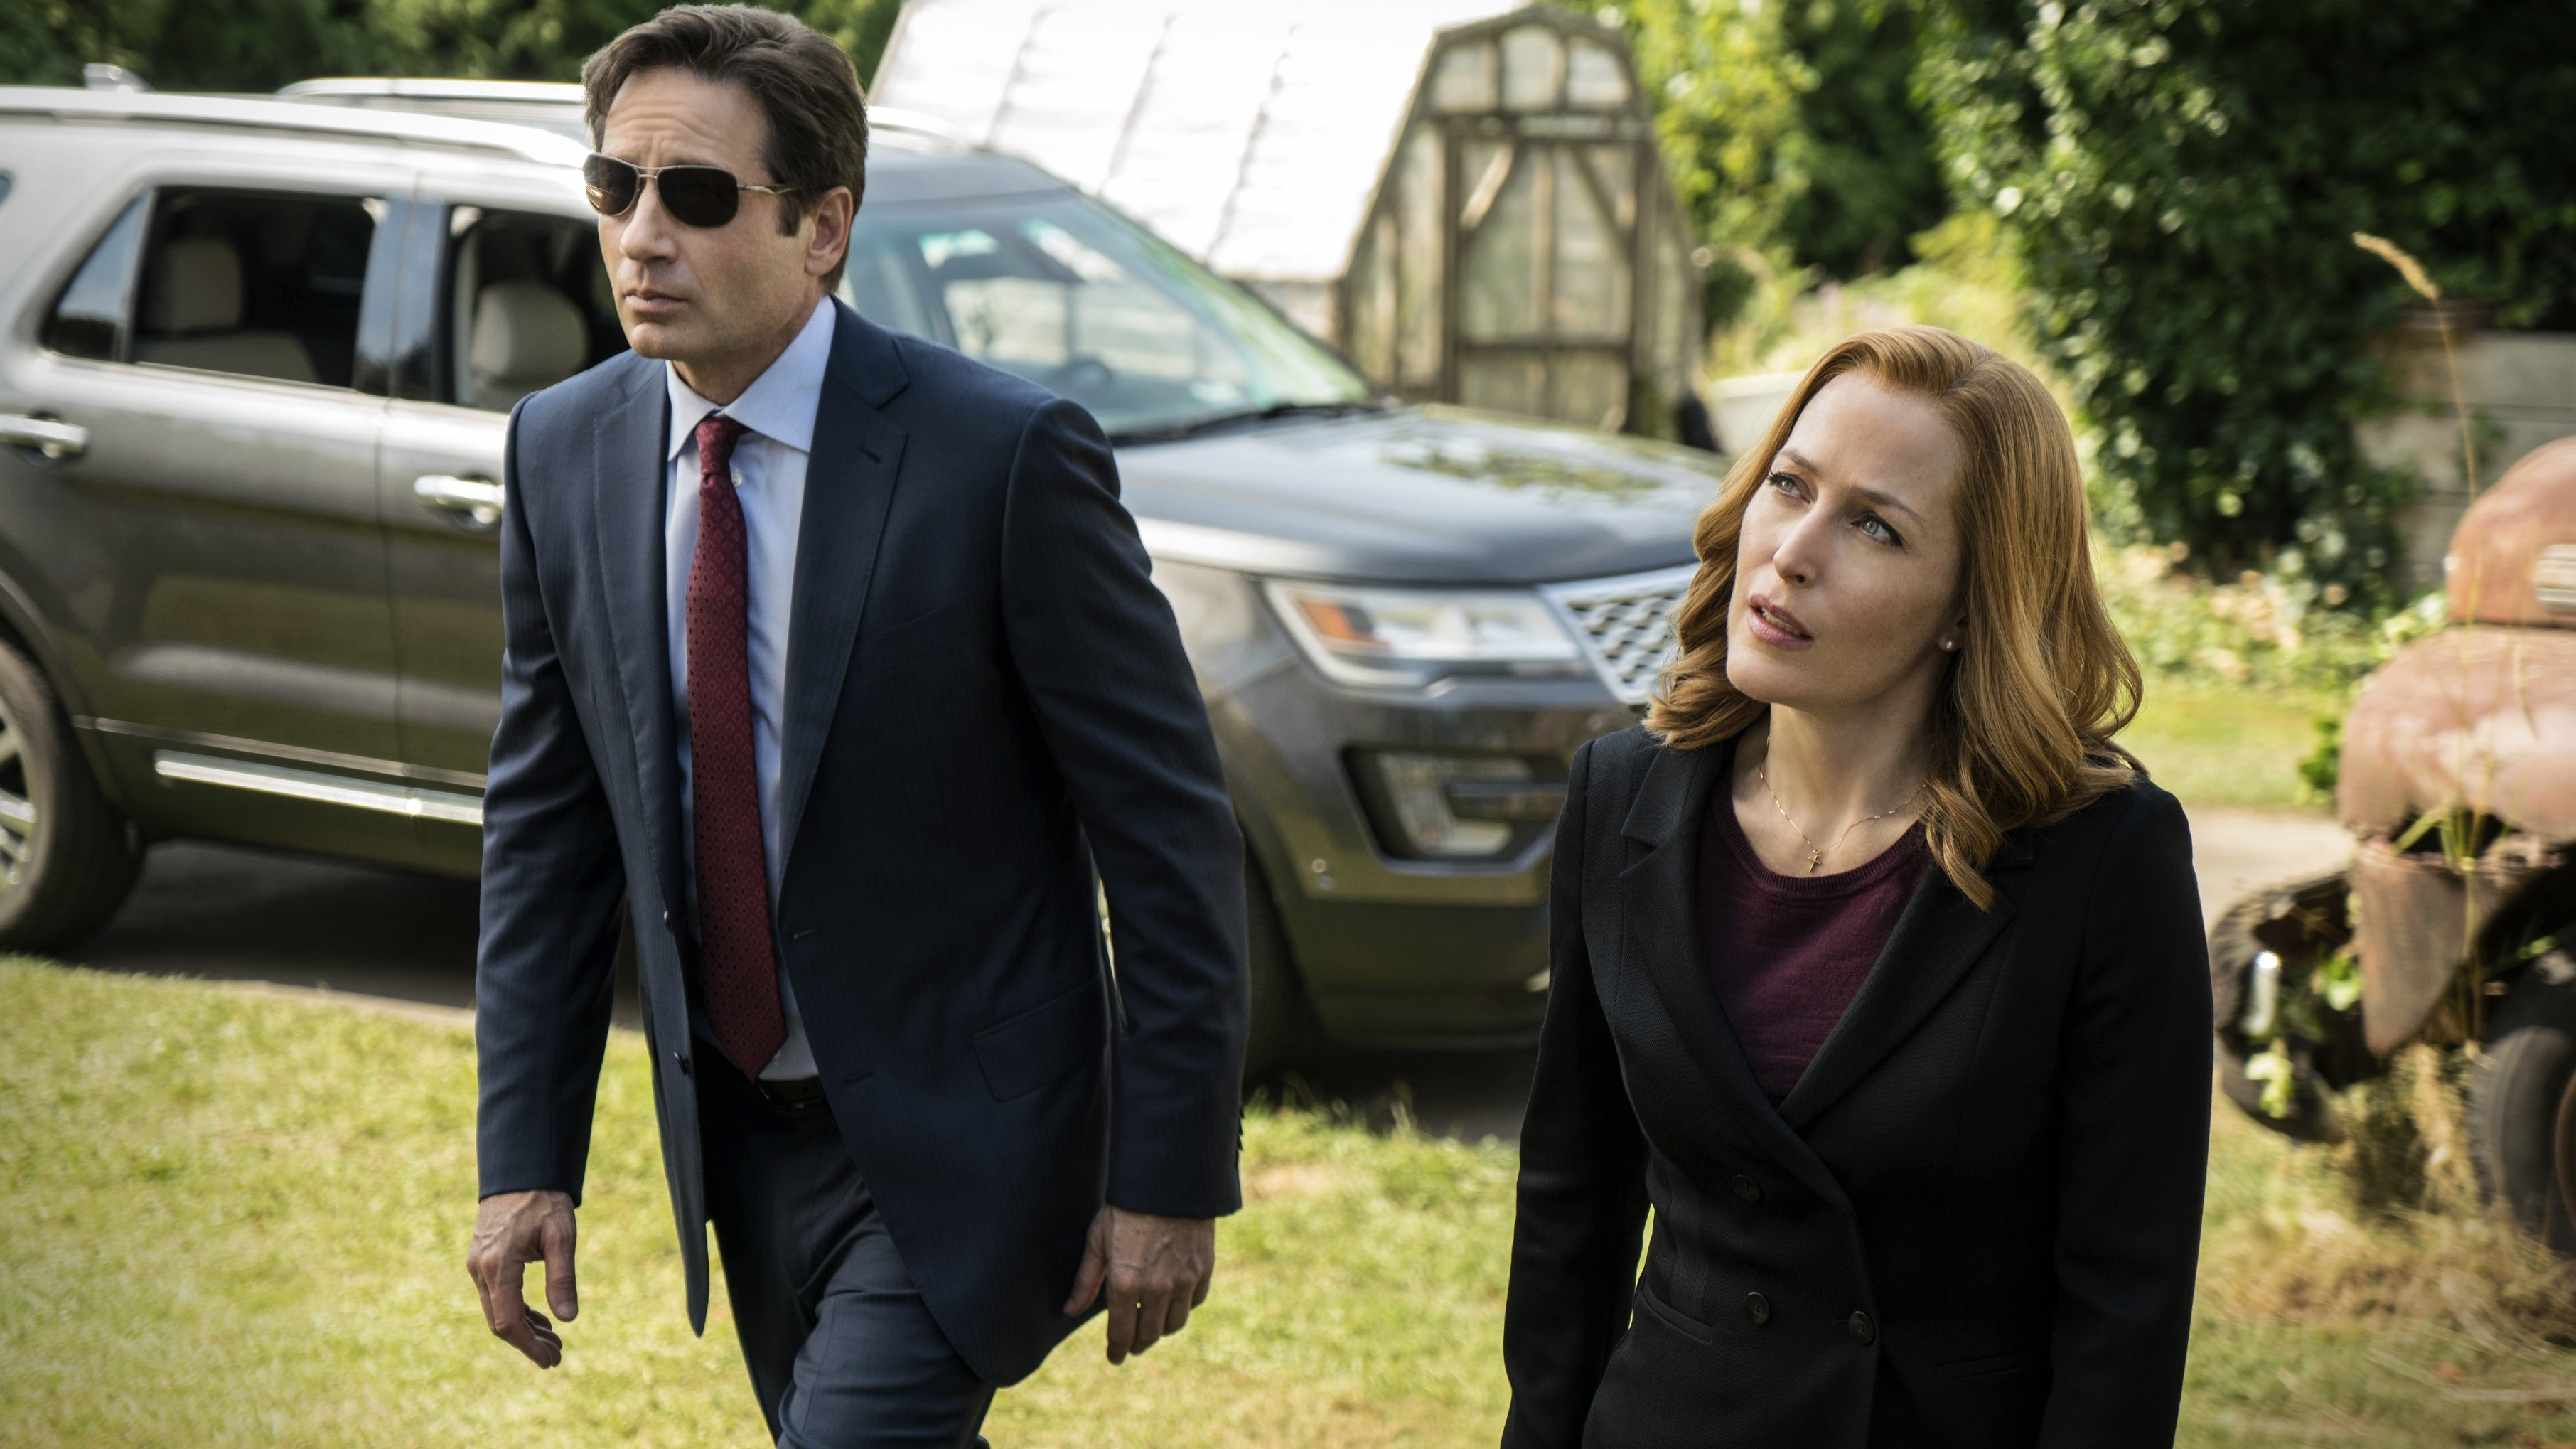 Mulder And Scully On Why The World Is Ready For An 'X-Files' Reboot